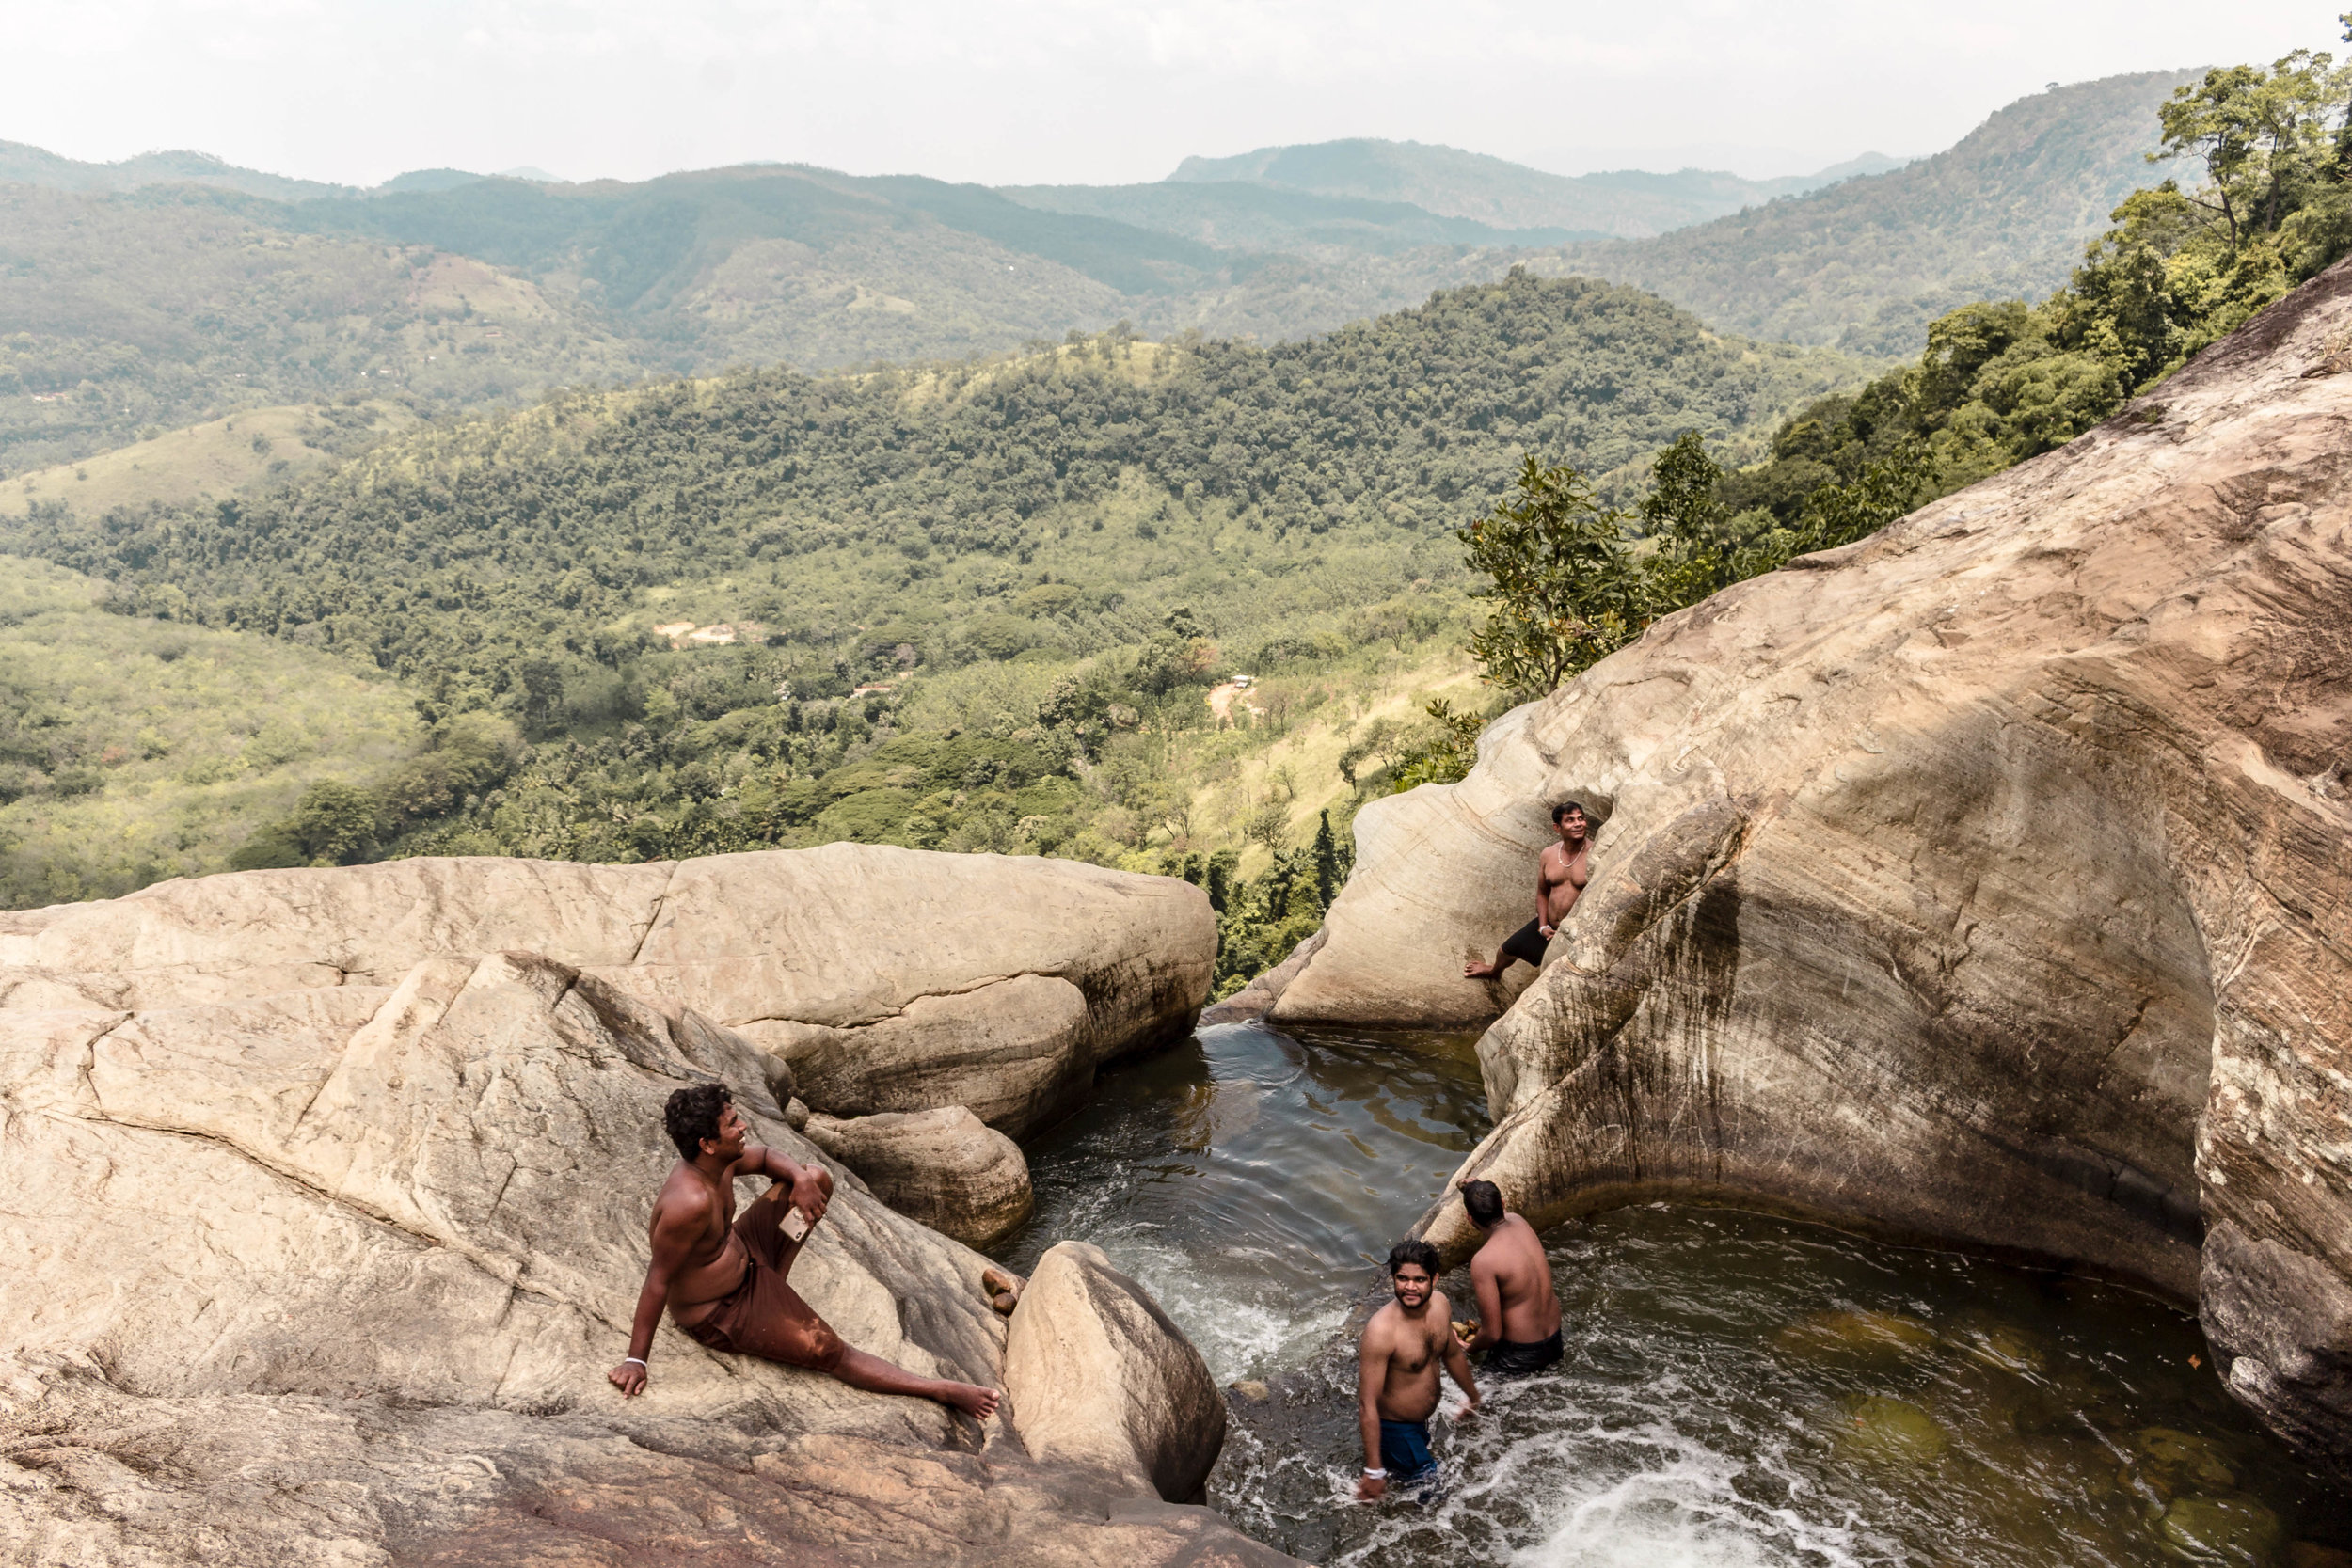 LOCAL MEN SWIMMING IN THE POOLS AT THE TOP OF THE LOWER FALLS